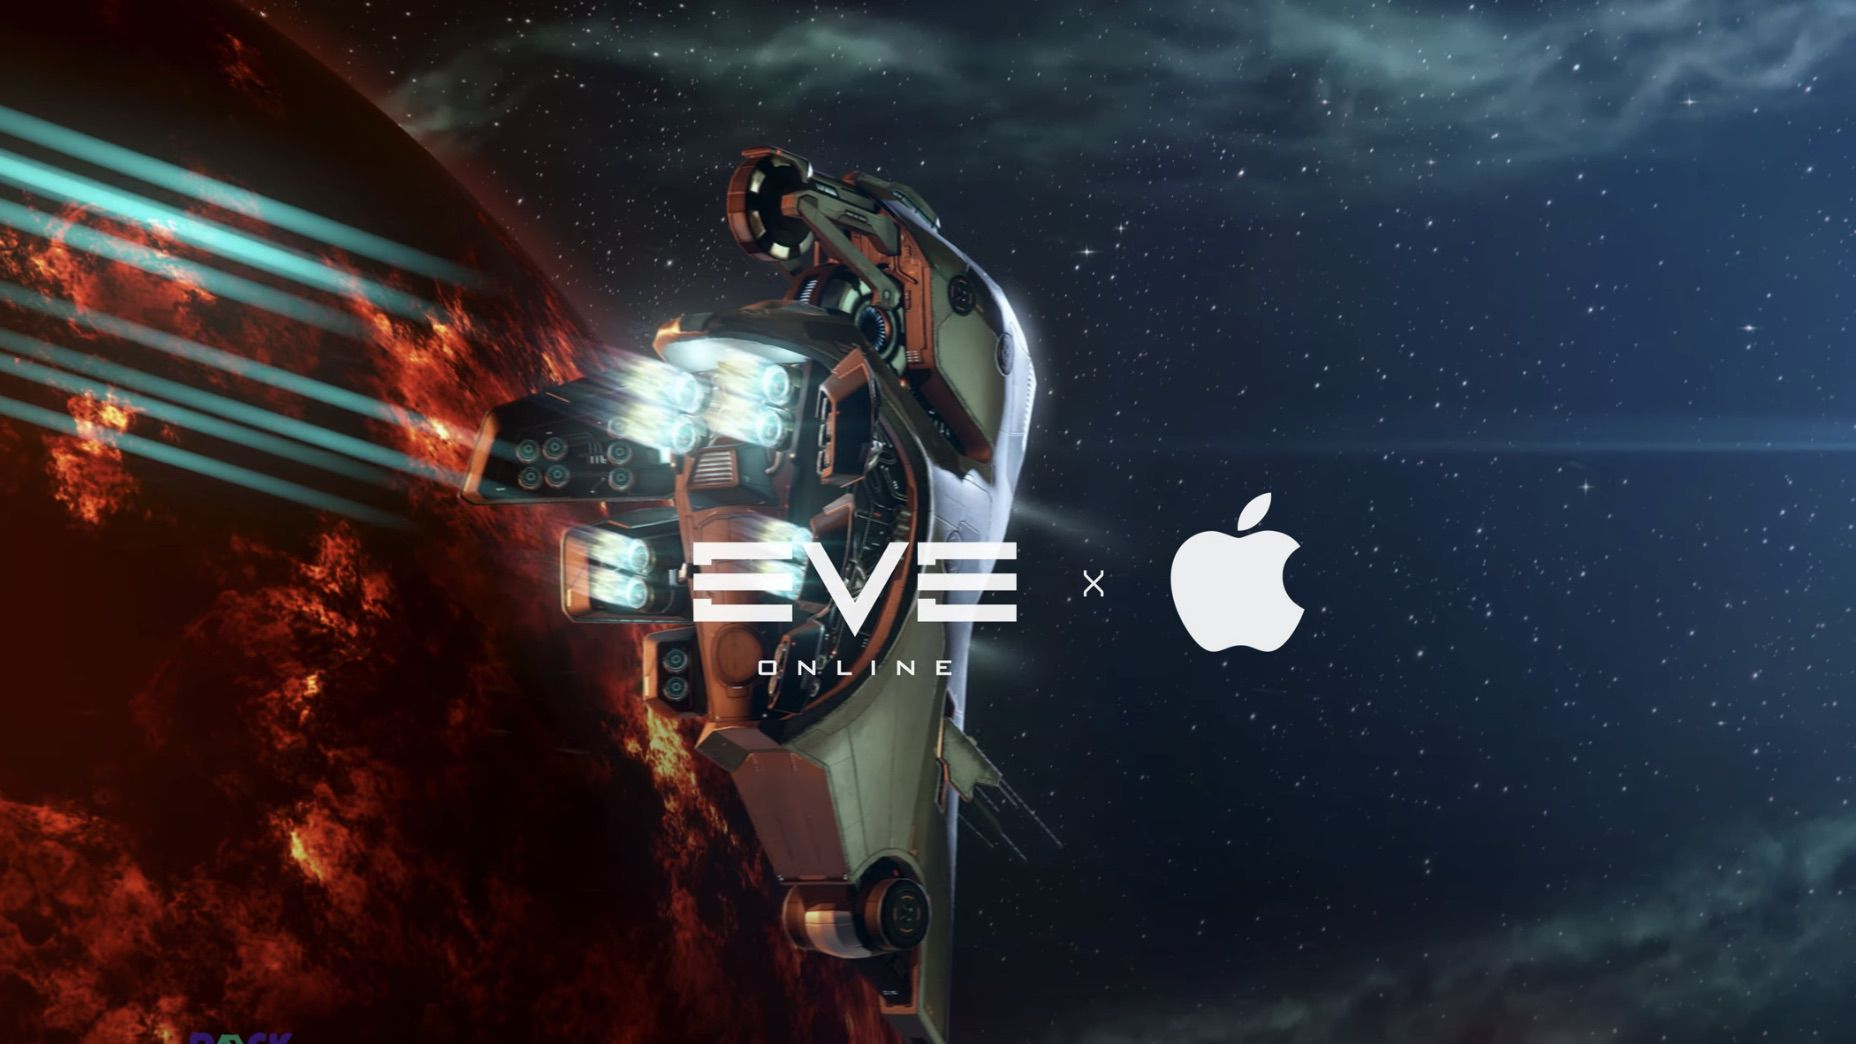 Eve Online Now Available Natively on Macs, Optimized for Apple Silicon